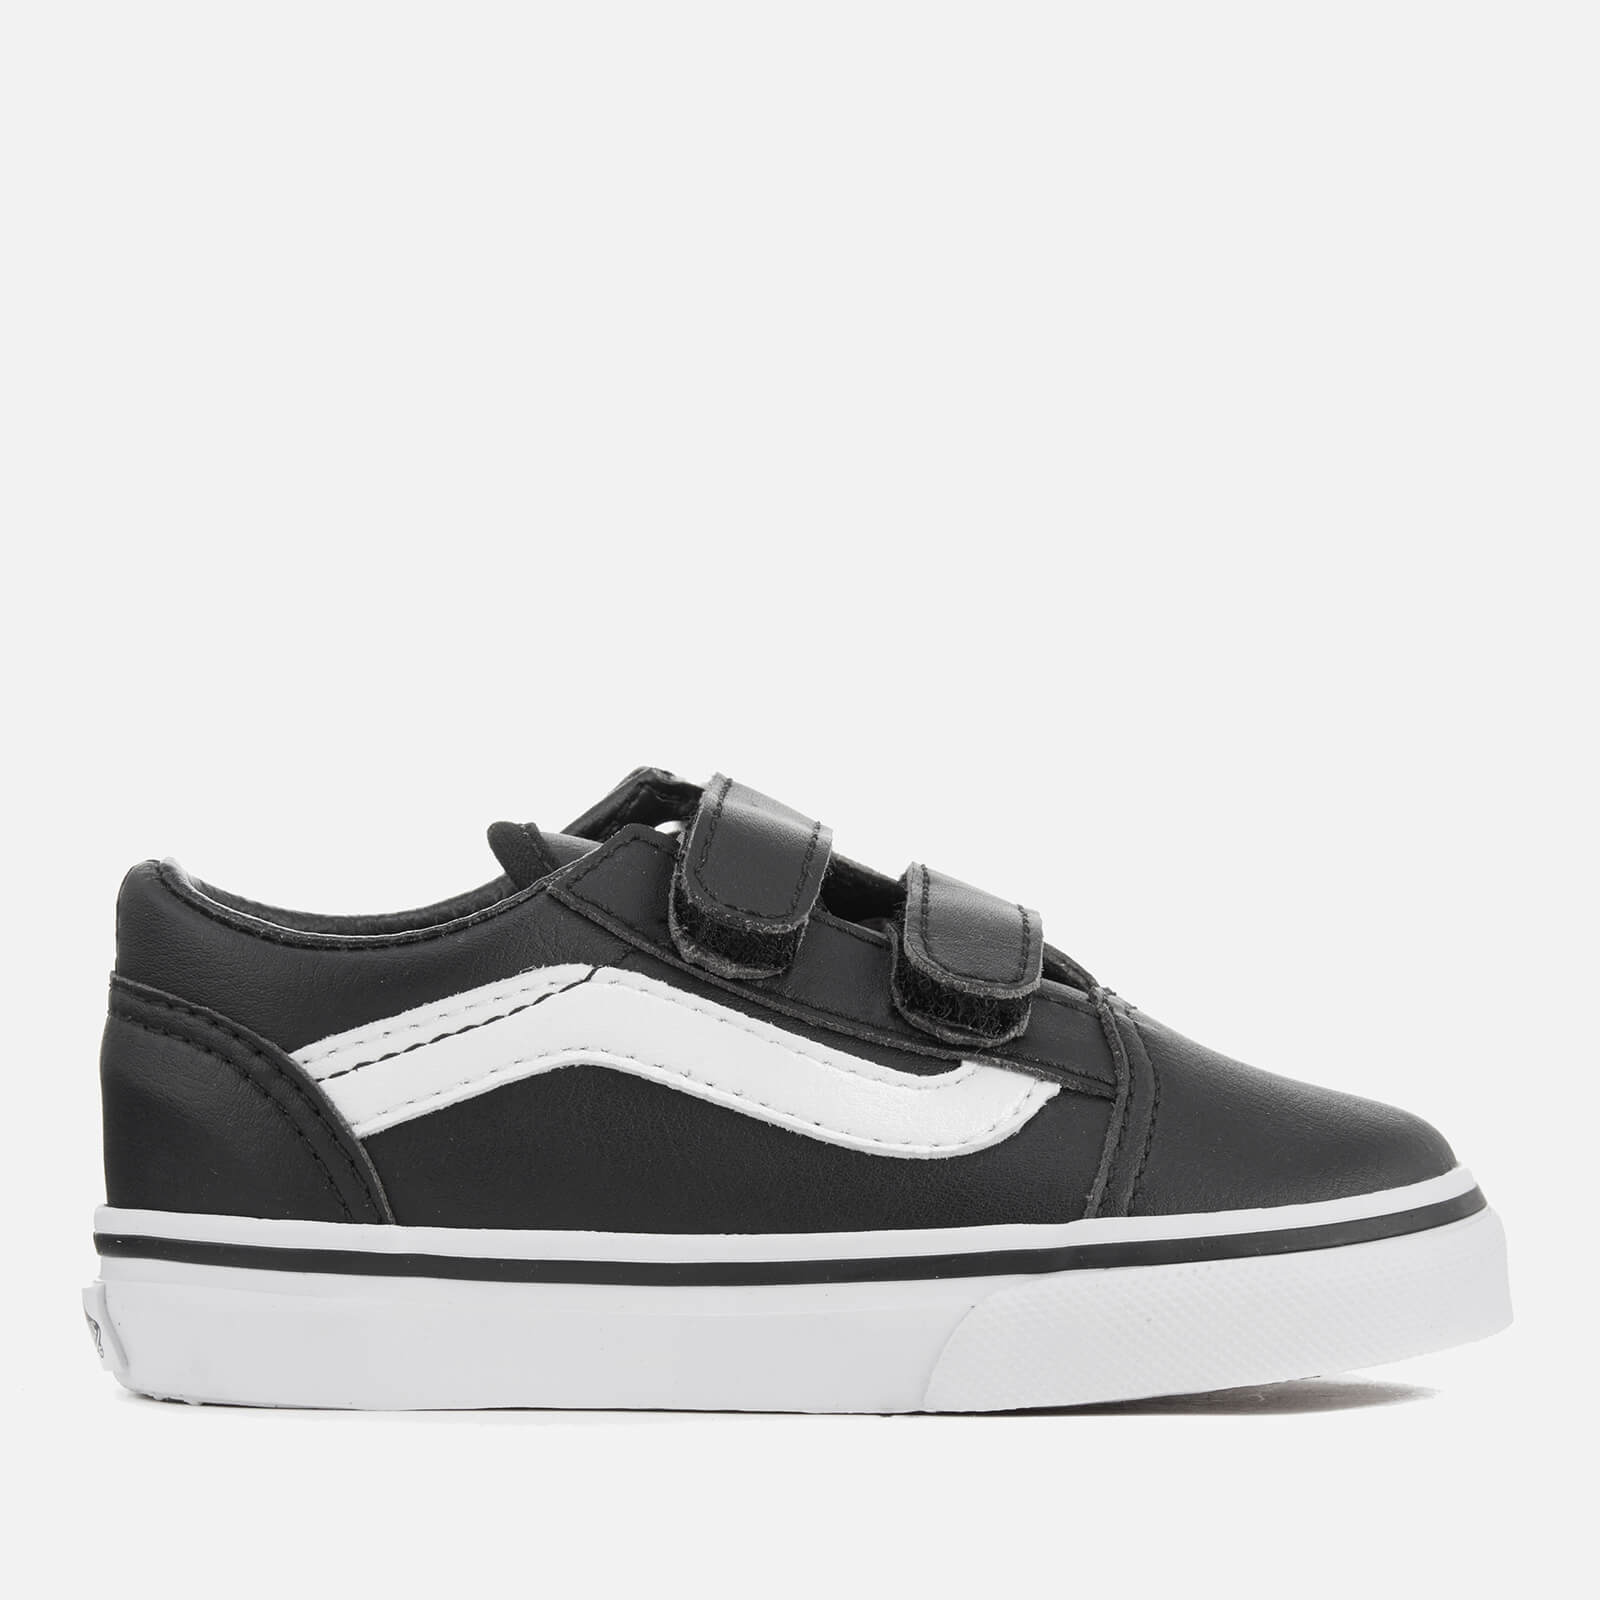 8d49360afb Vans Toddlers' Old Skool V Classic Tumble Trainers - Black/True White